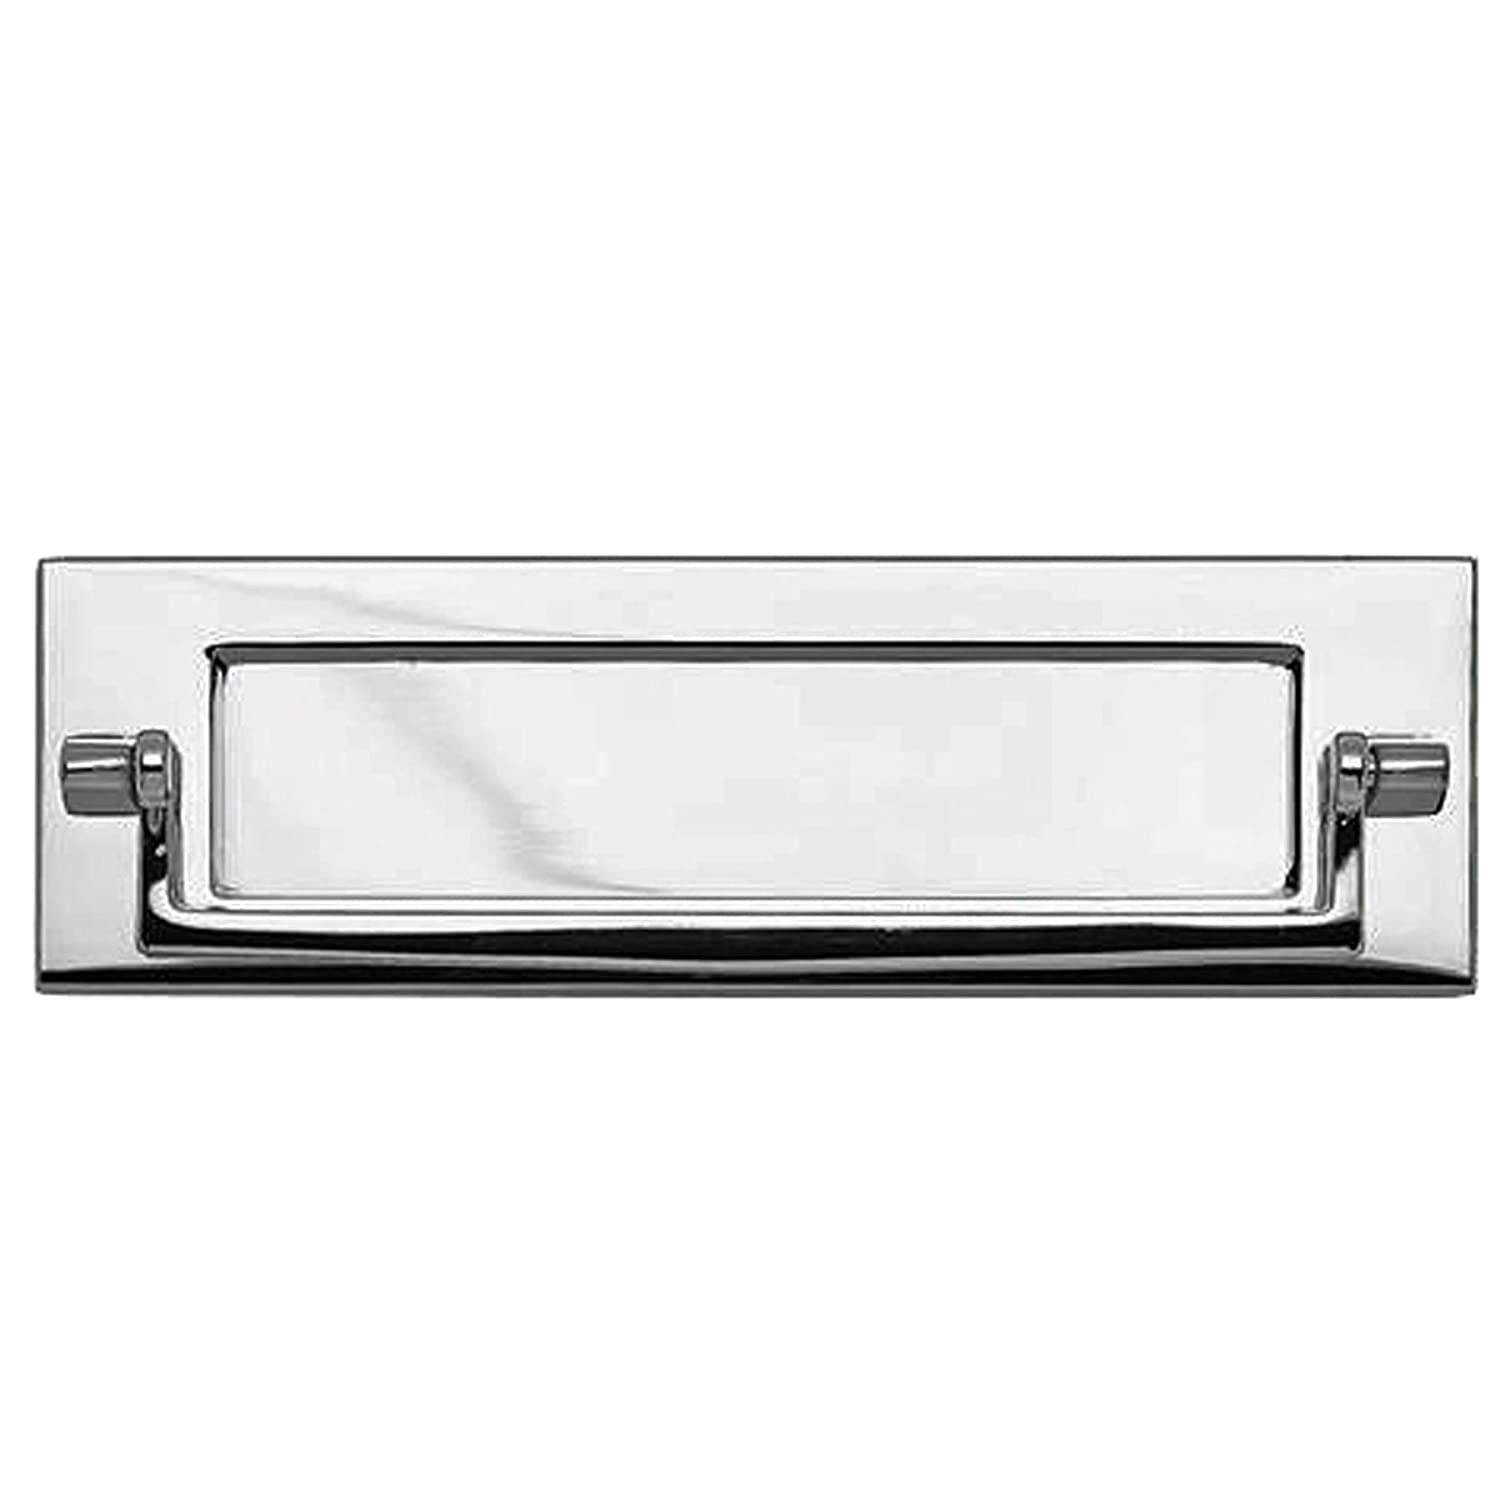 Polished Chrome 250mm Traditional Letterbox Knocker White Hinge